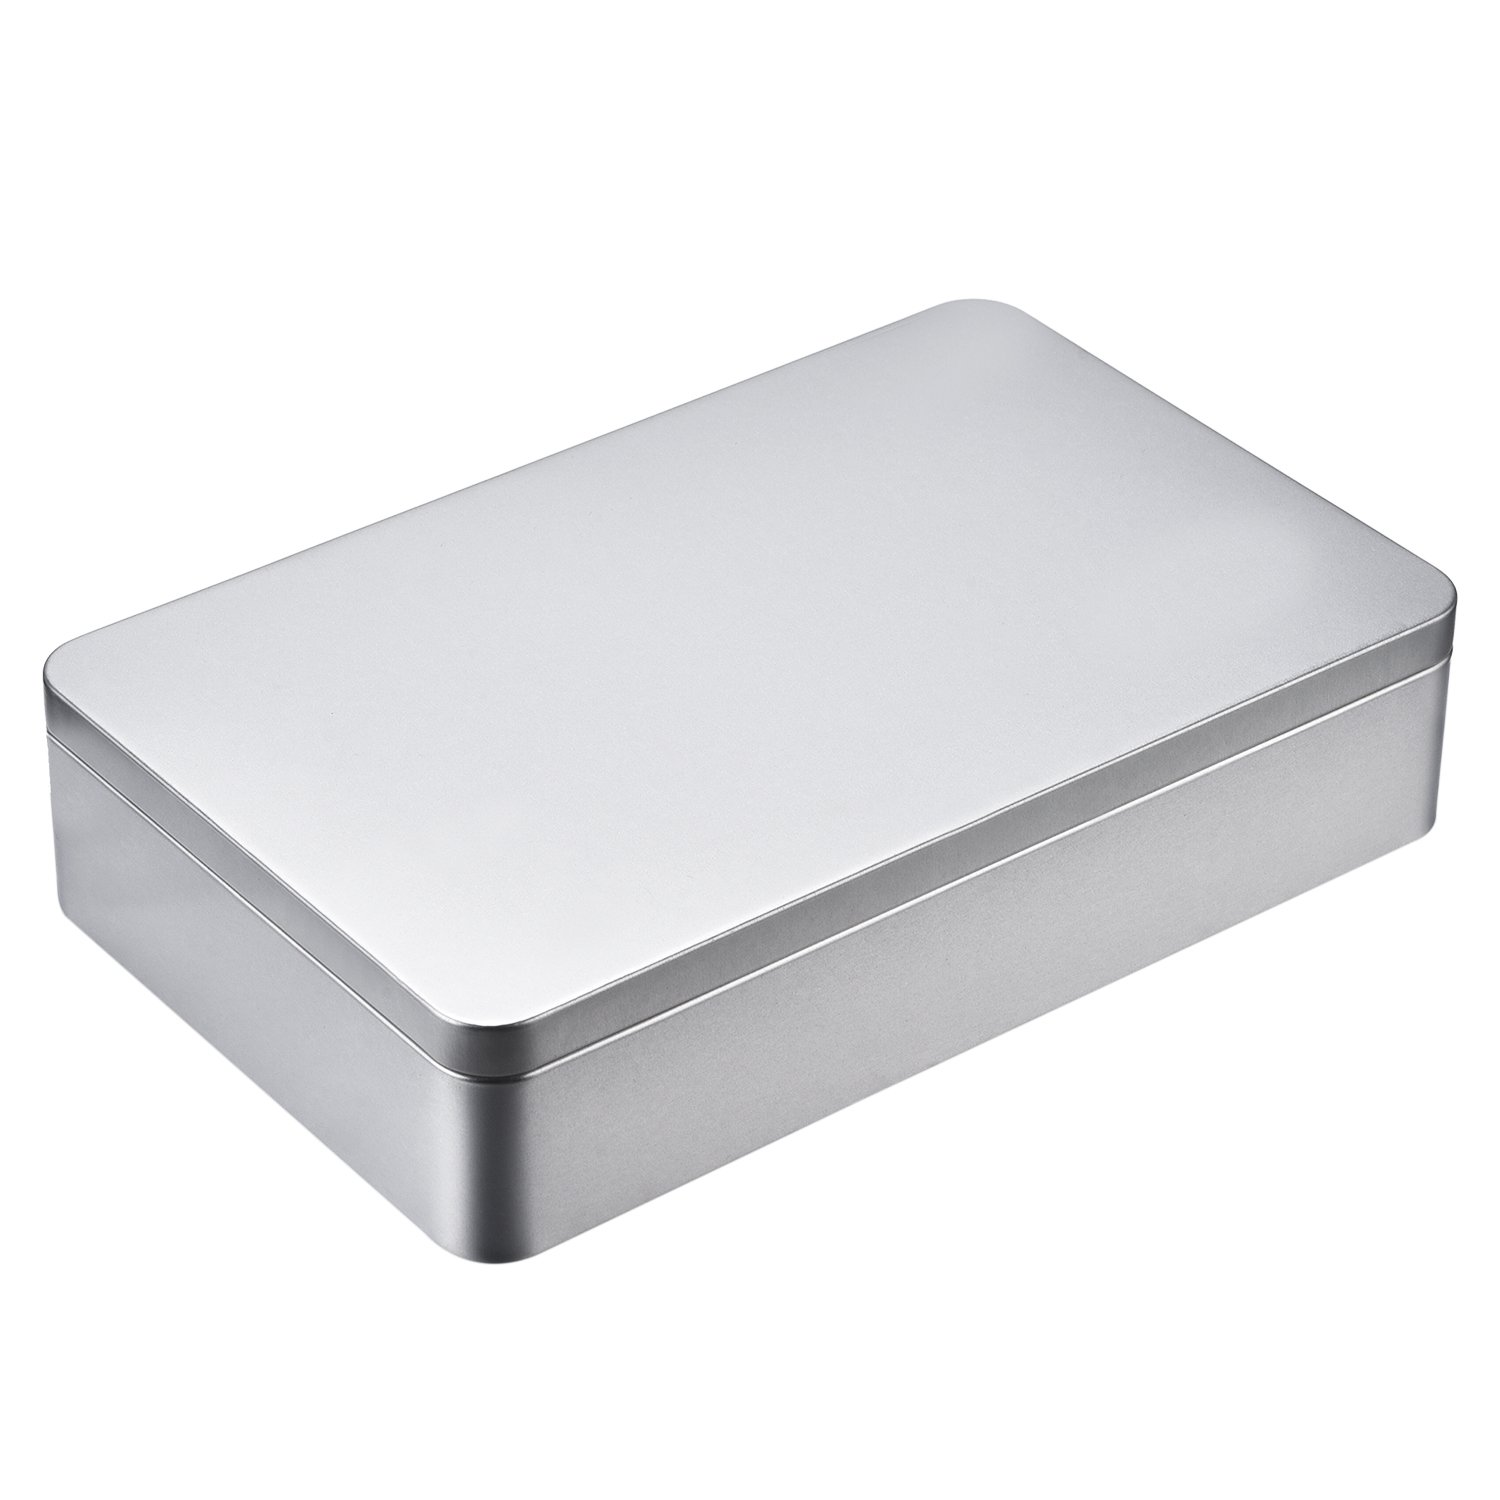 Shappy 8.5 by 5.3 by 1.9 inch Silver Rectangular Empty Tin Box Containers, Gift, Jewelery and Storage Tin Kit, Home Organizer 4336939687